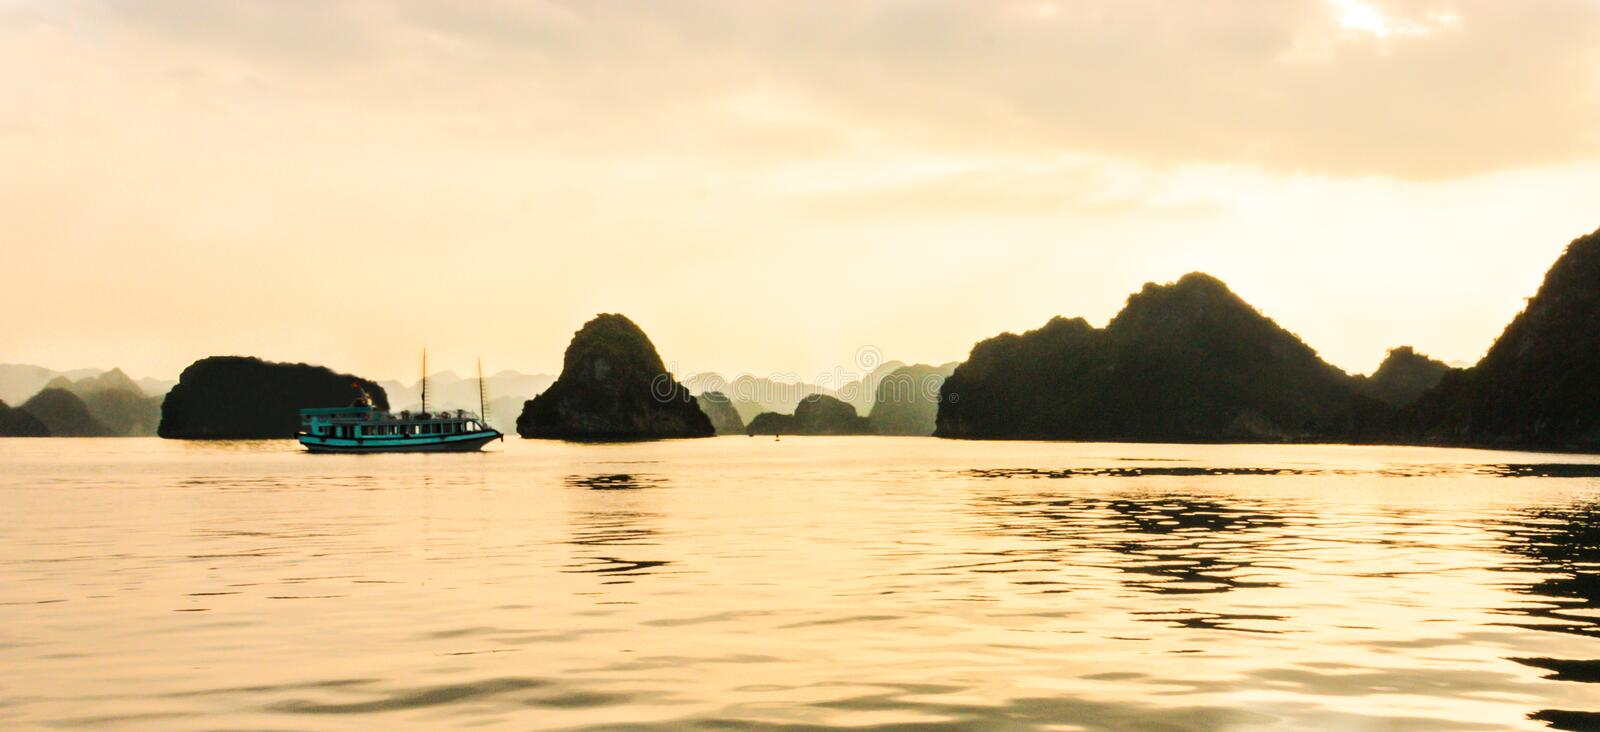 Panorama of Ha Long bay islands, tourist boat and seascape in the evening with golden light reflection on water, Ha Long, Vietnam royalty free stock photos